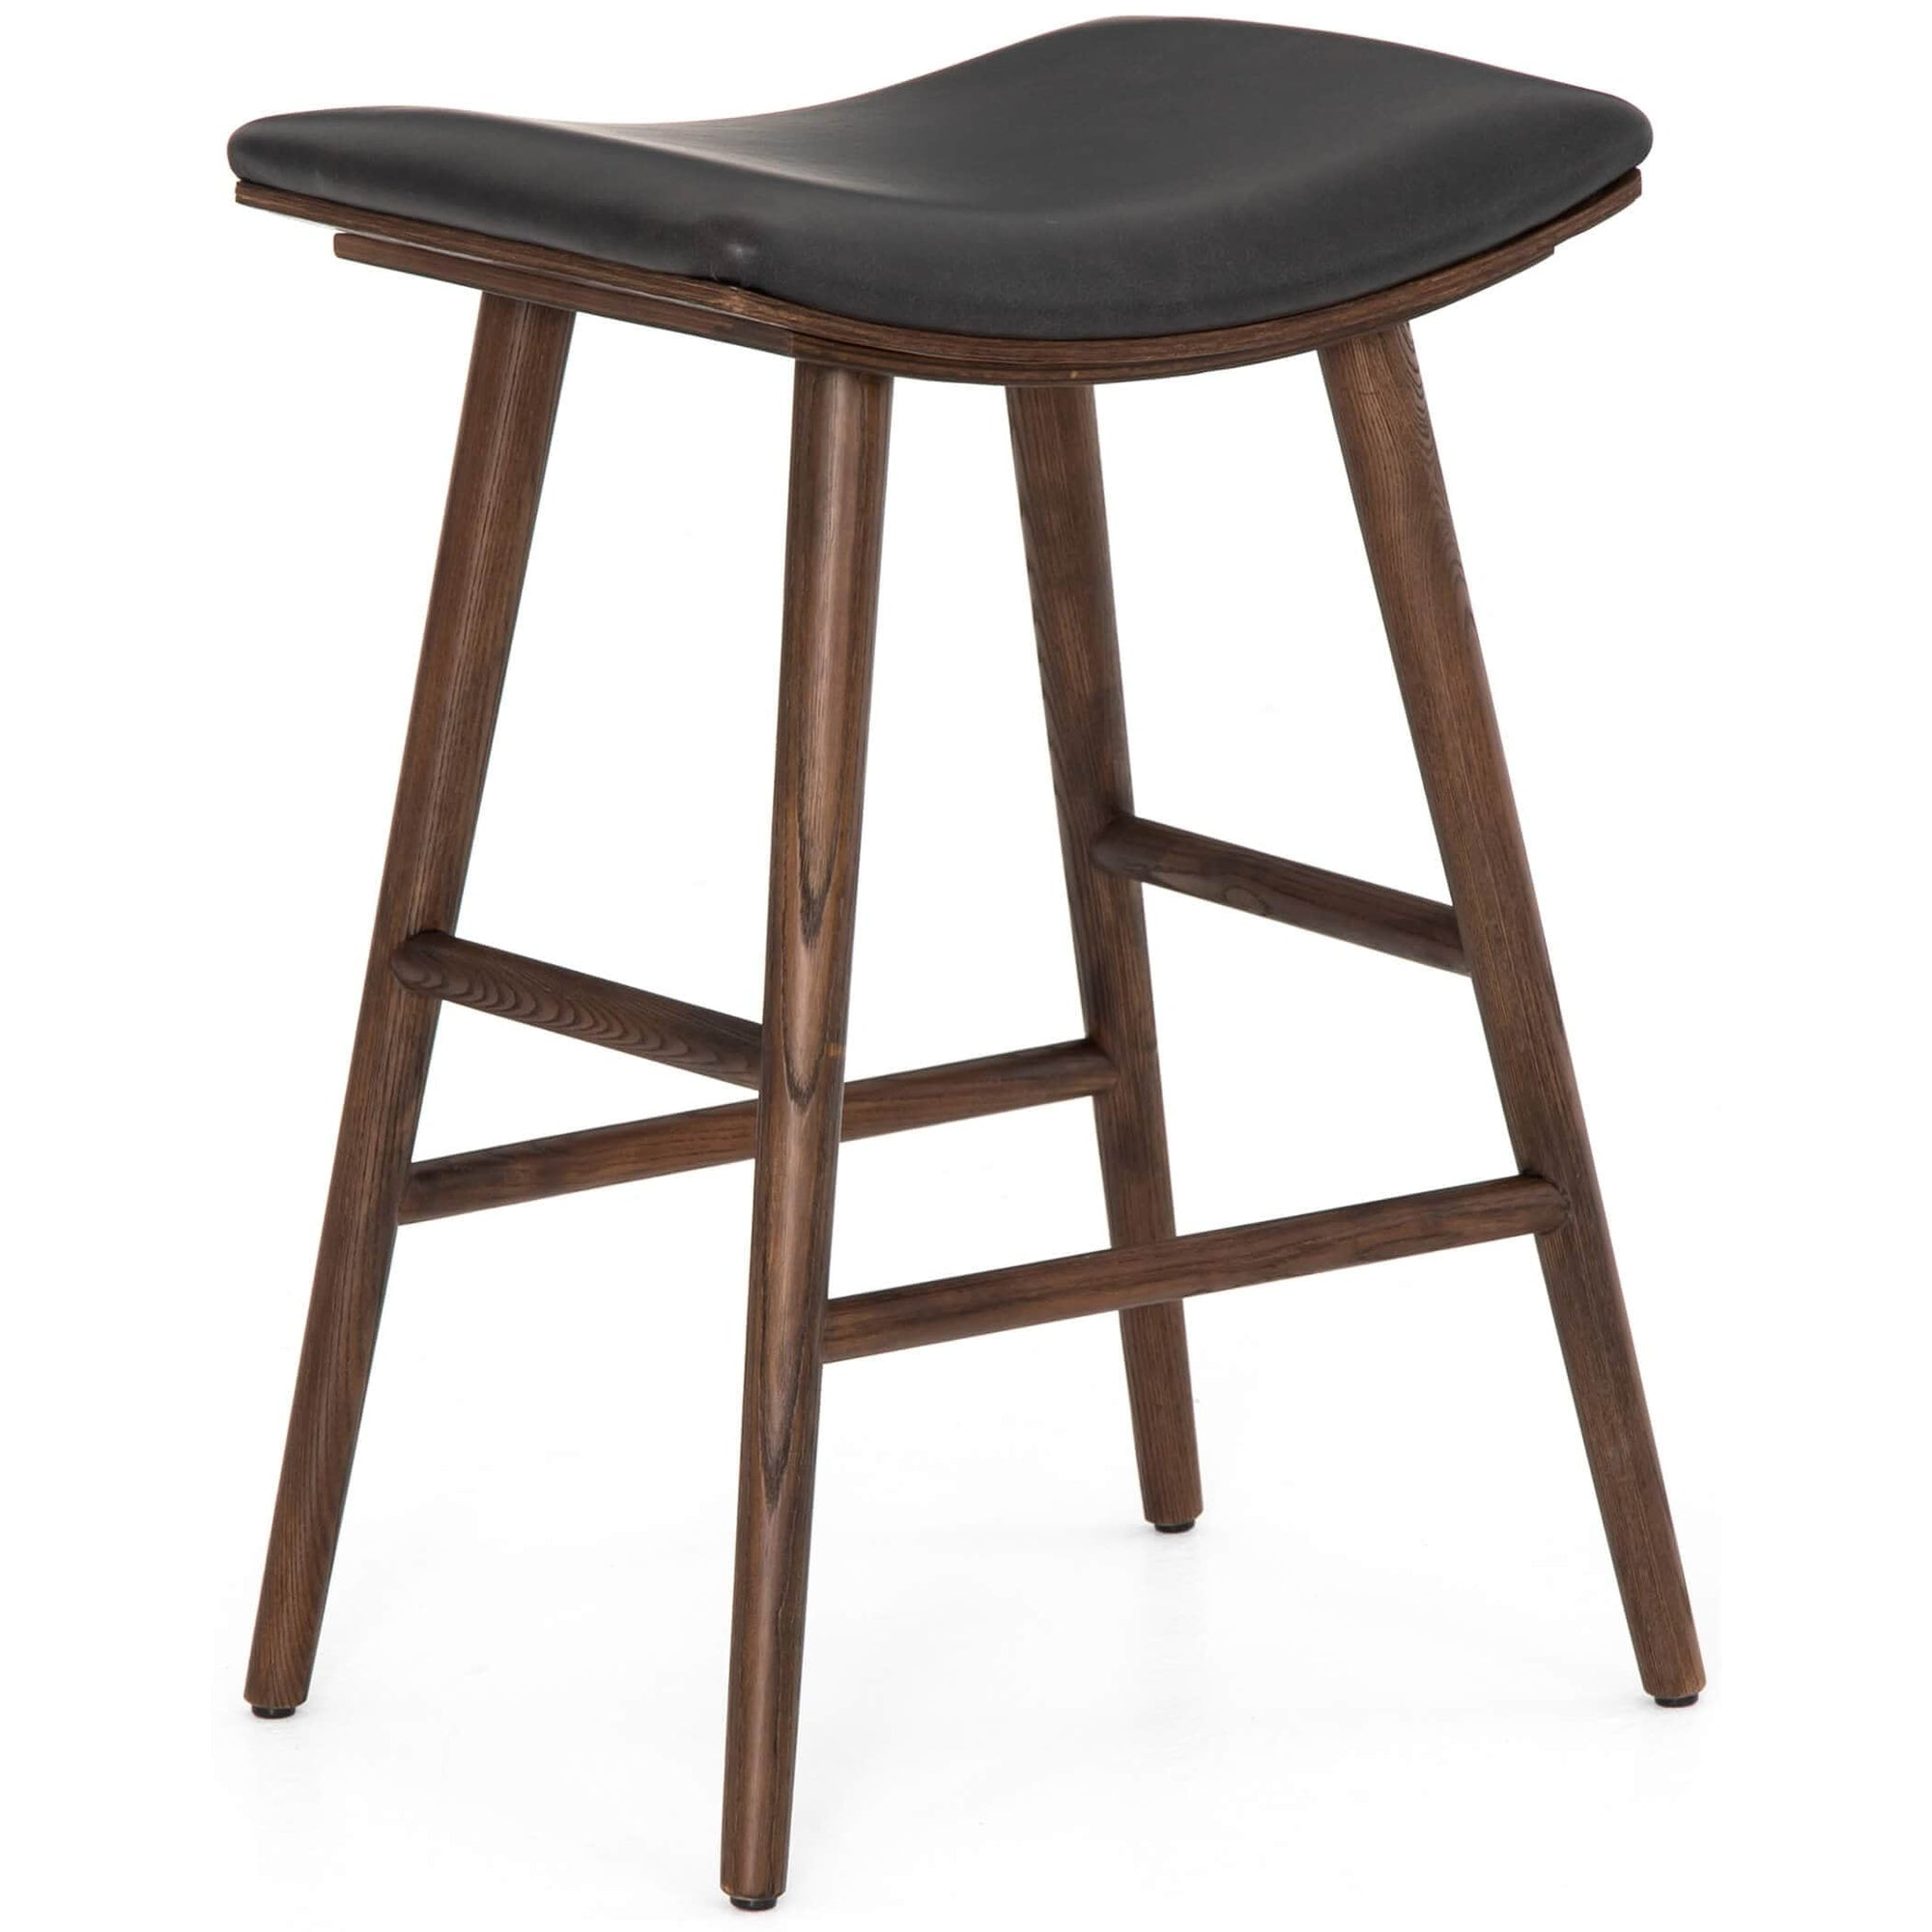 Excellent Union Saddle Counter Stool Distressed Black High Fashion Home Forskolin Free Trial Chair Design Images Forskolin Free Trialorg